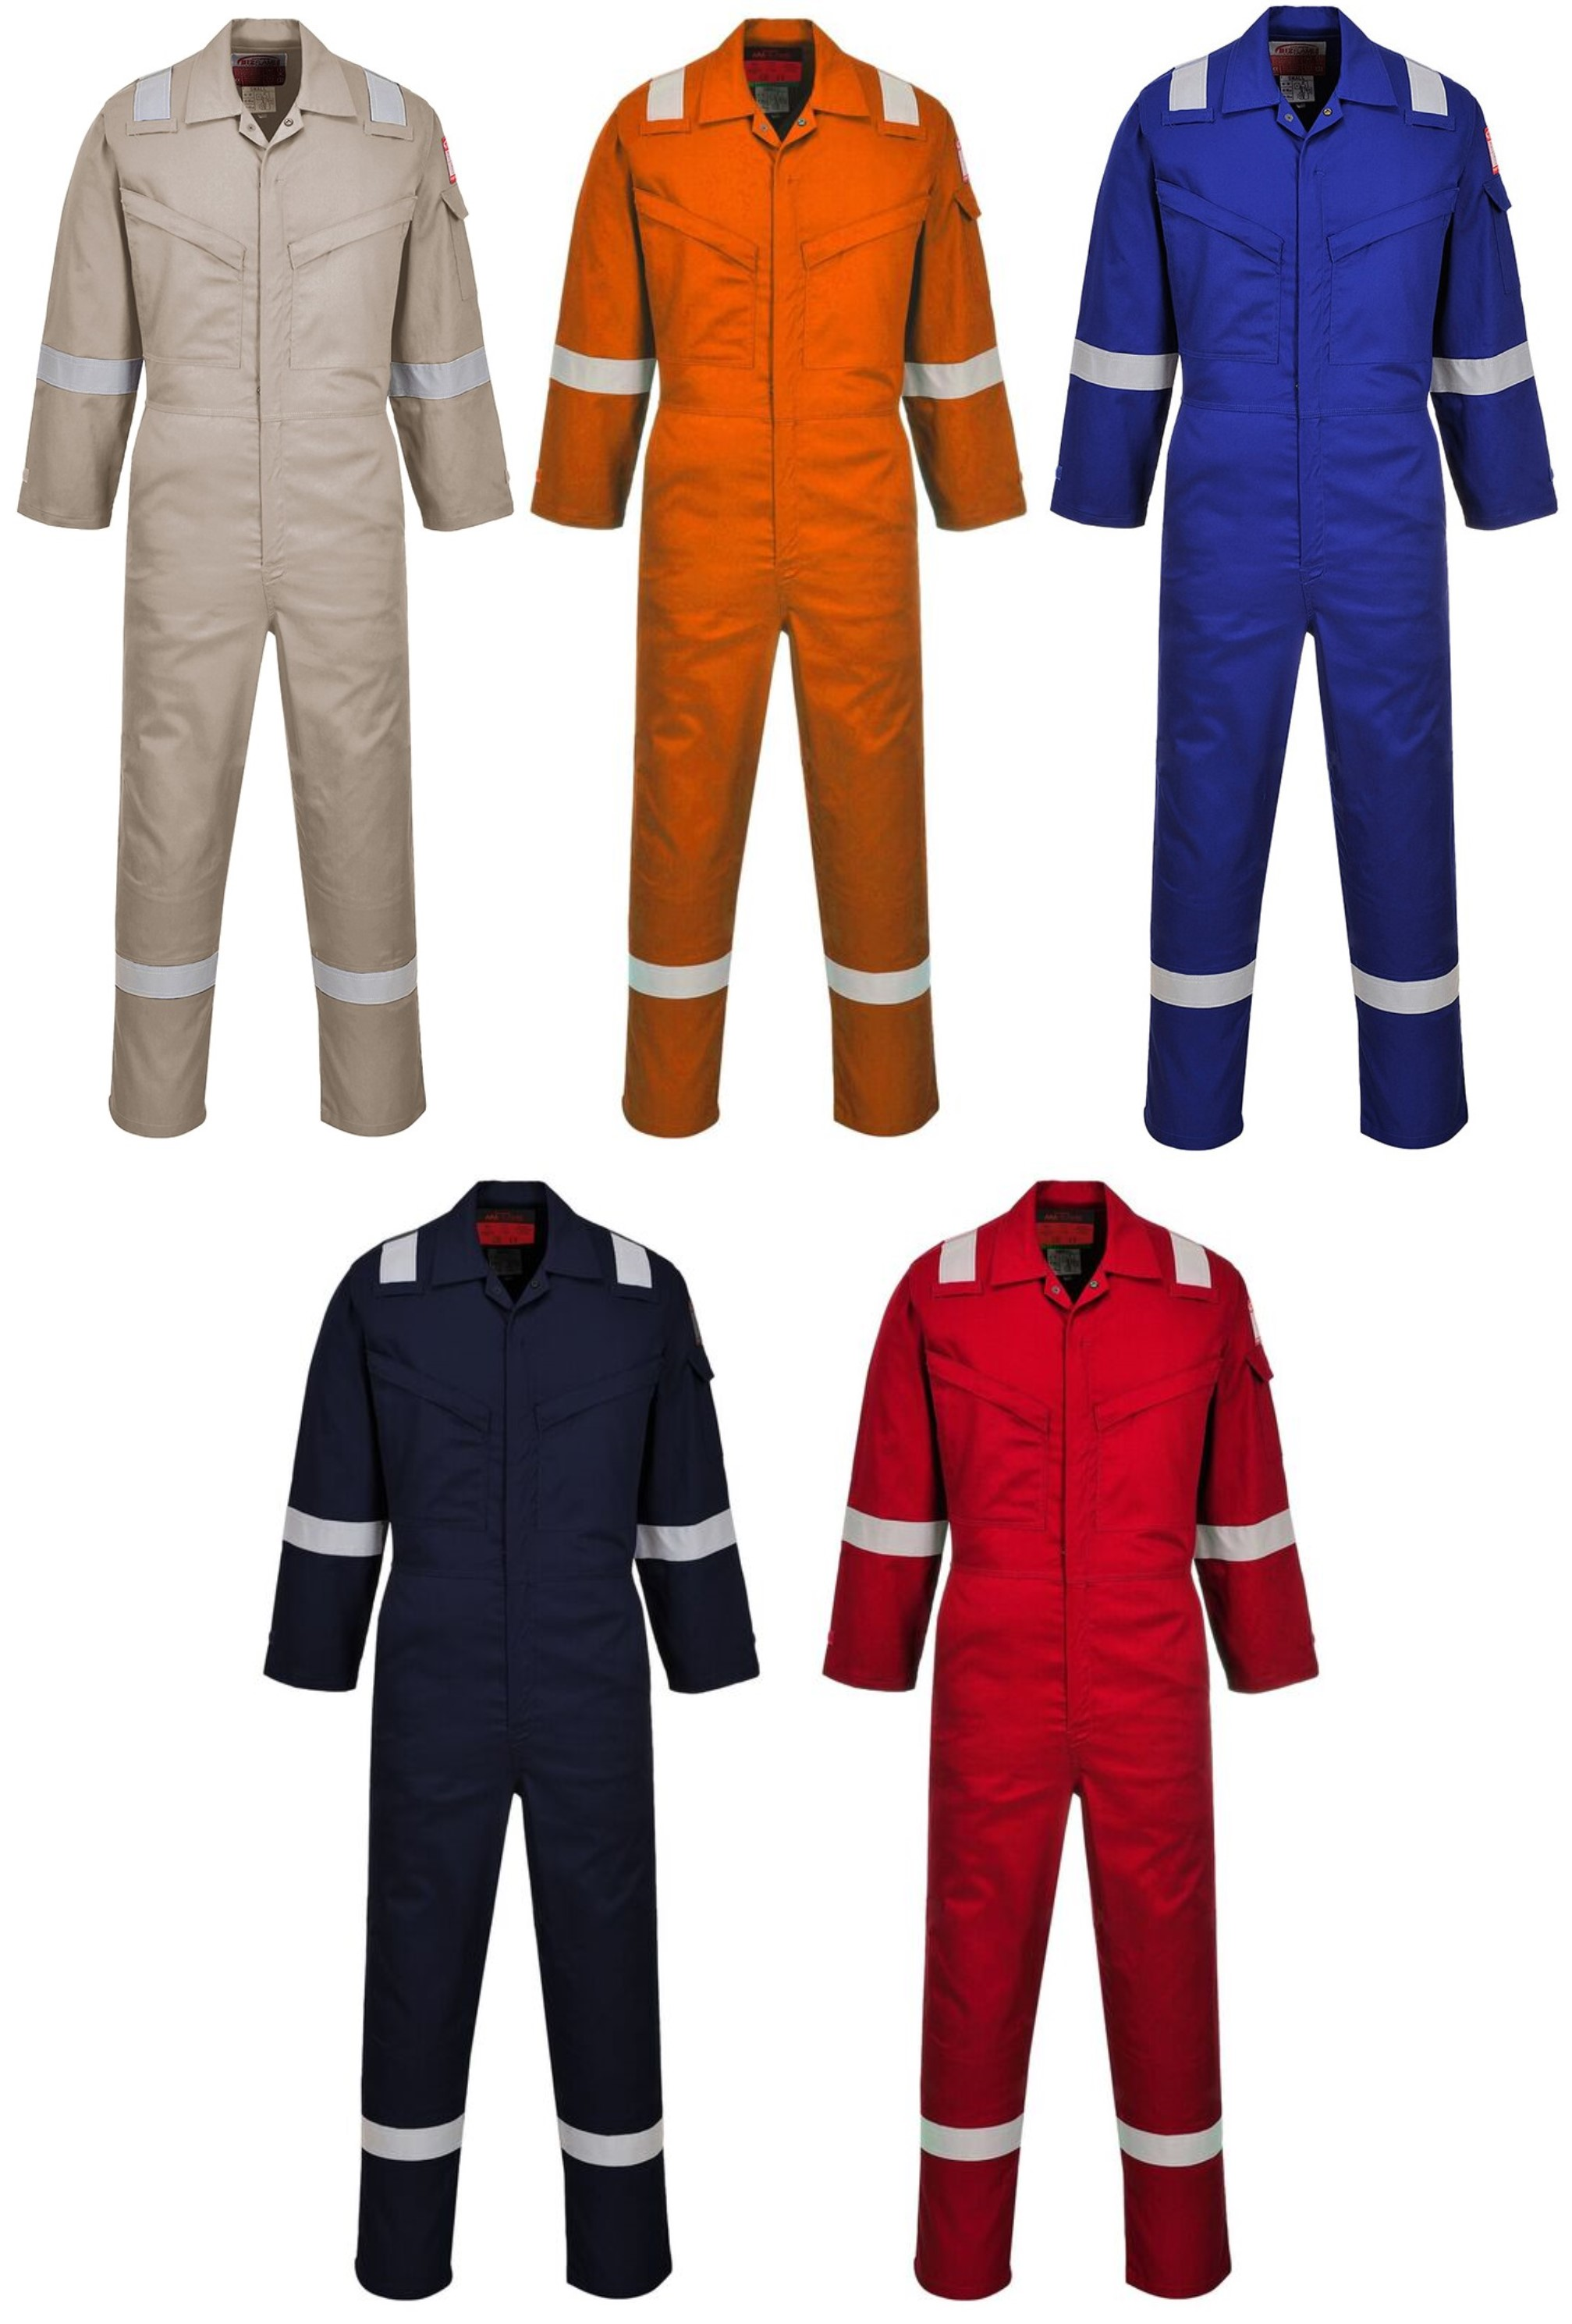 5a06329b888d Portwest AF73 lightweight flame resistant elasticated coverall khaki size 36